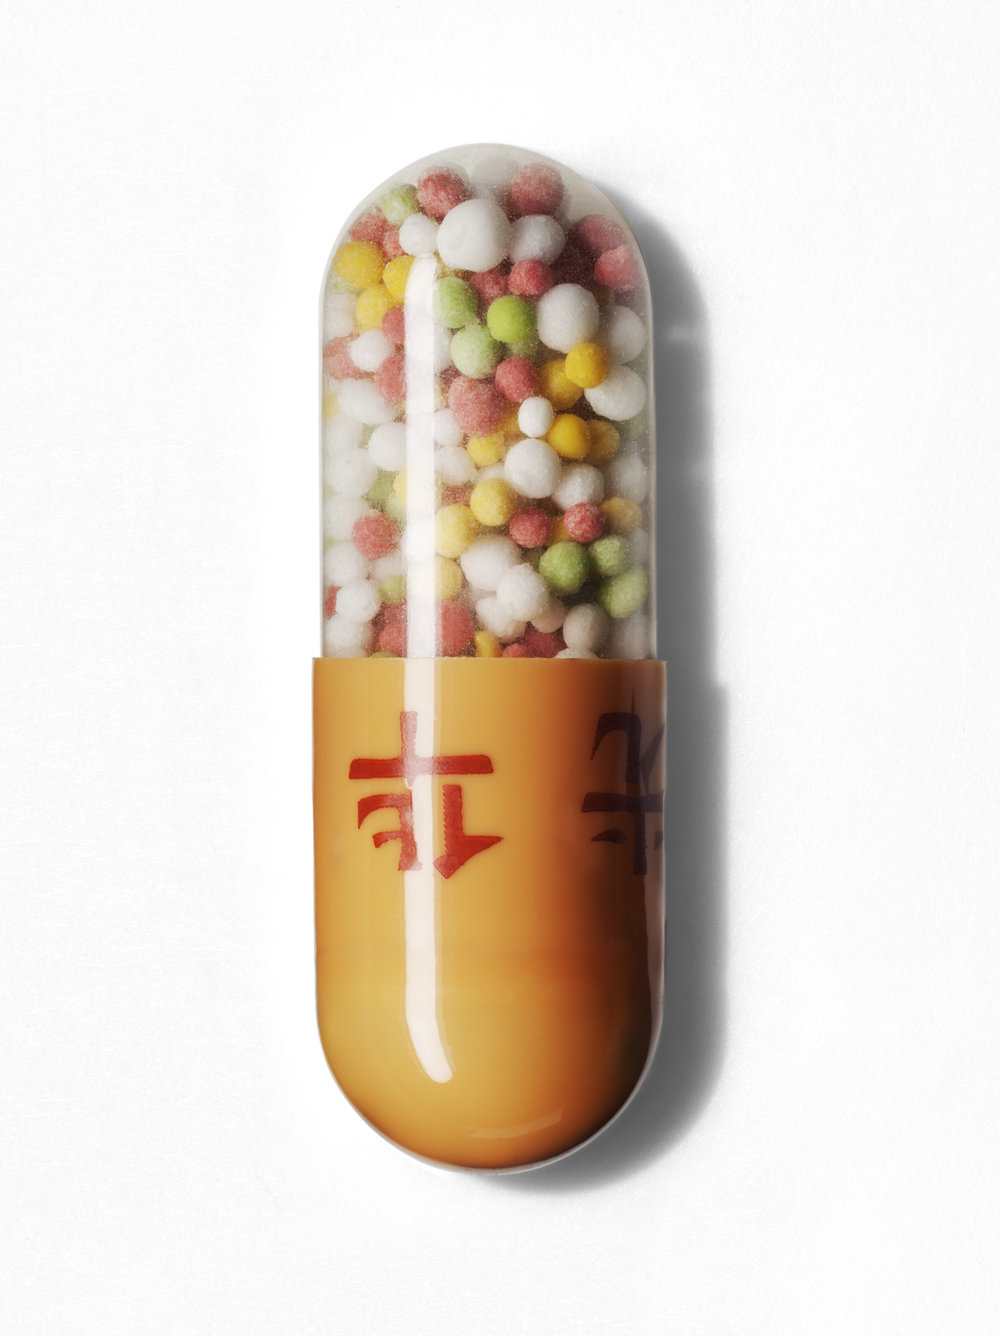 150430_Chinese Pills_053-58_A_crop.JPG